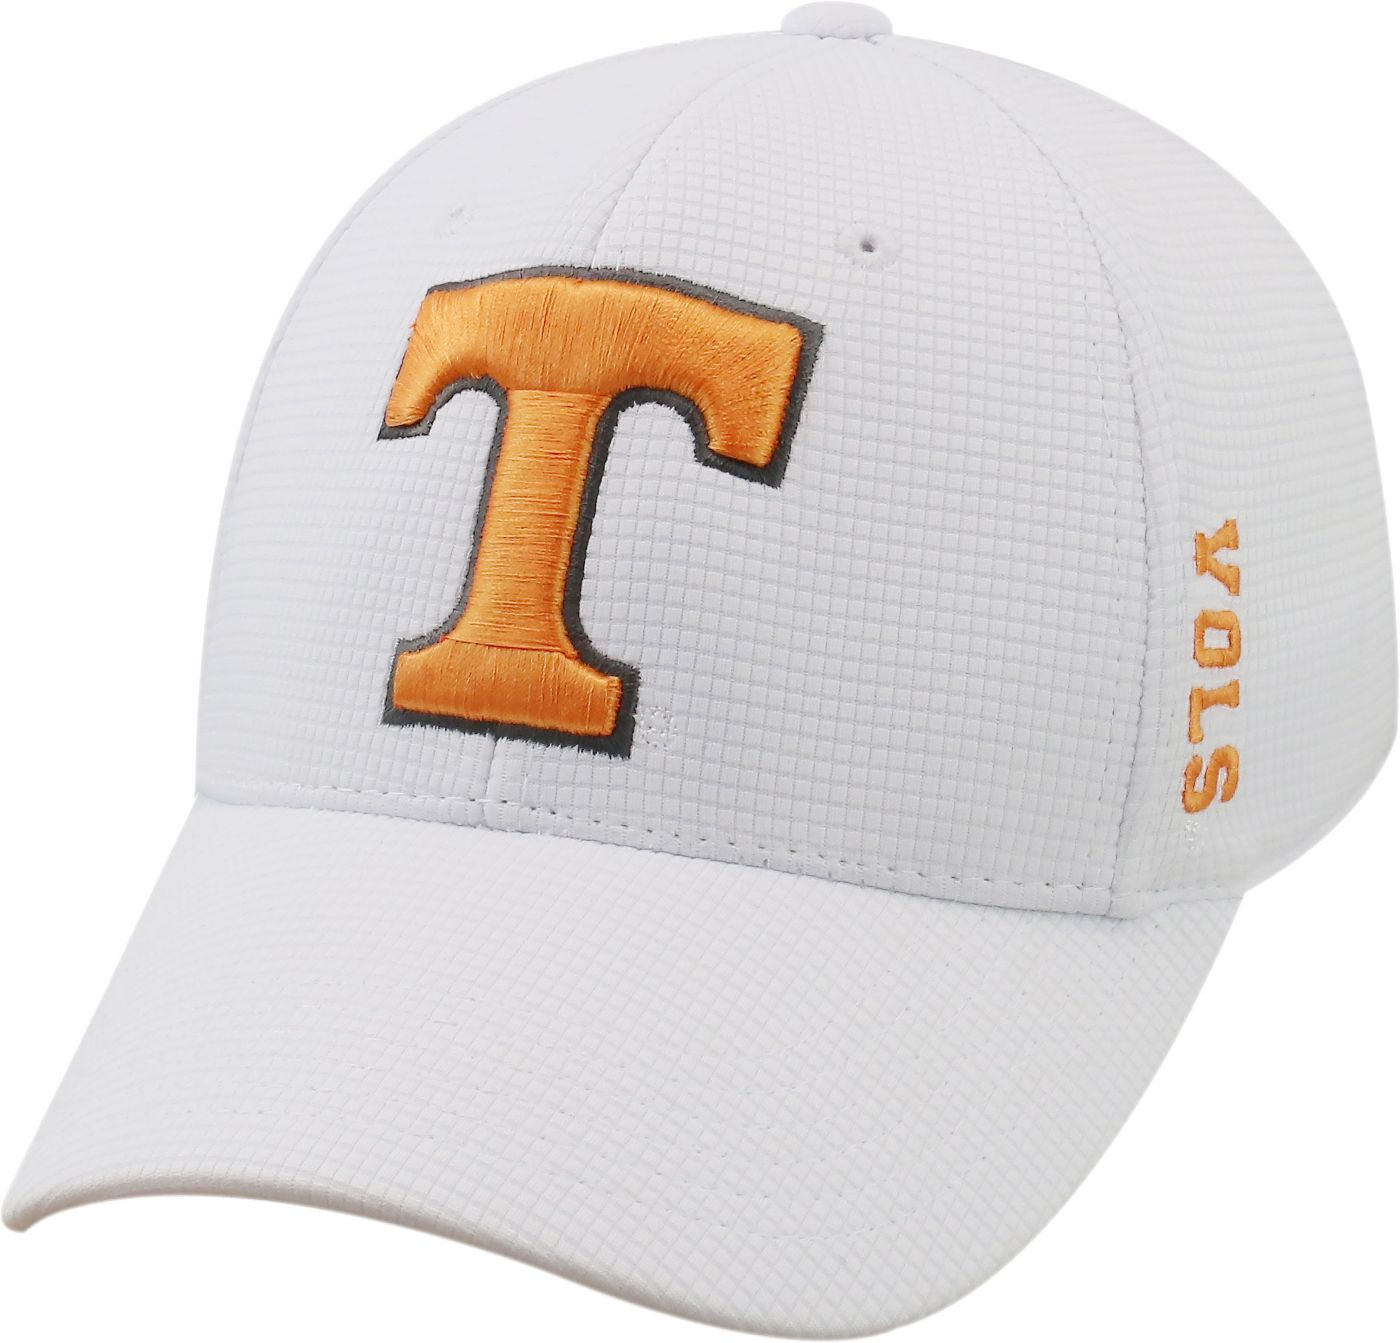 Top of the World Men's Tennessee Volunteers White Booster Plus 1Fit Flex Hat